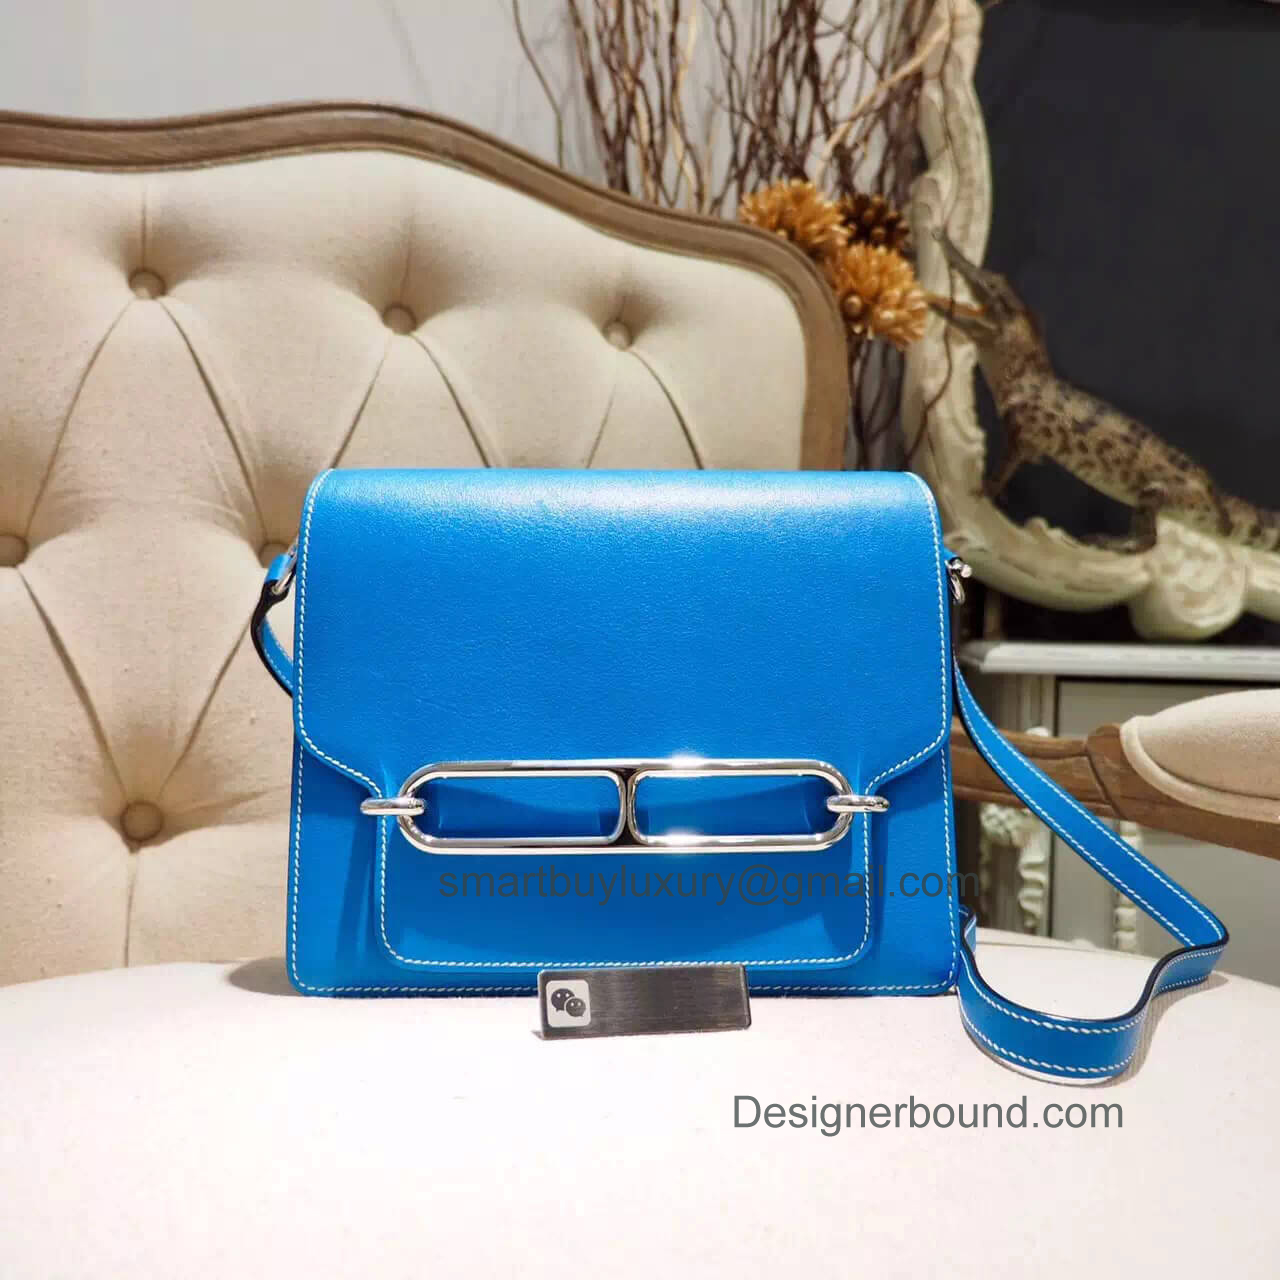 Hermes Roulis 23 White Stitching Bag in Blue Hydra Evercolor GHW